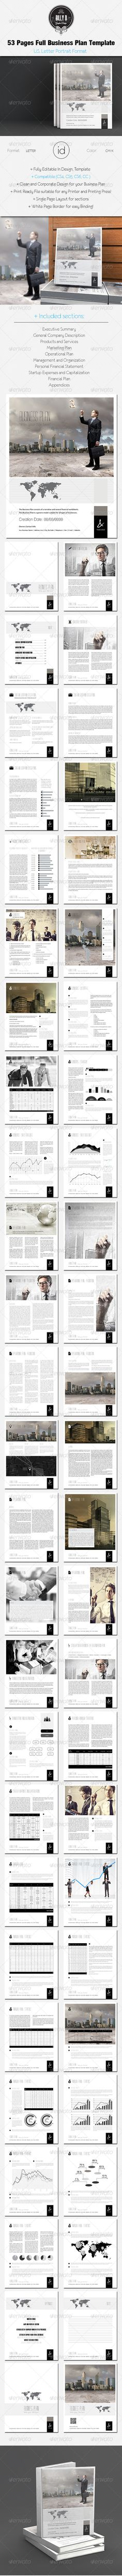 Dark Full CV Bifold Template Templates Pinterest Dark And - Full business plan template